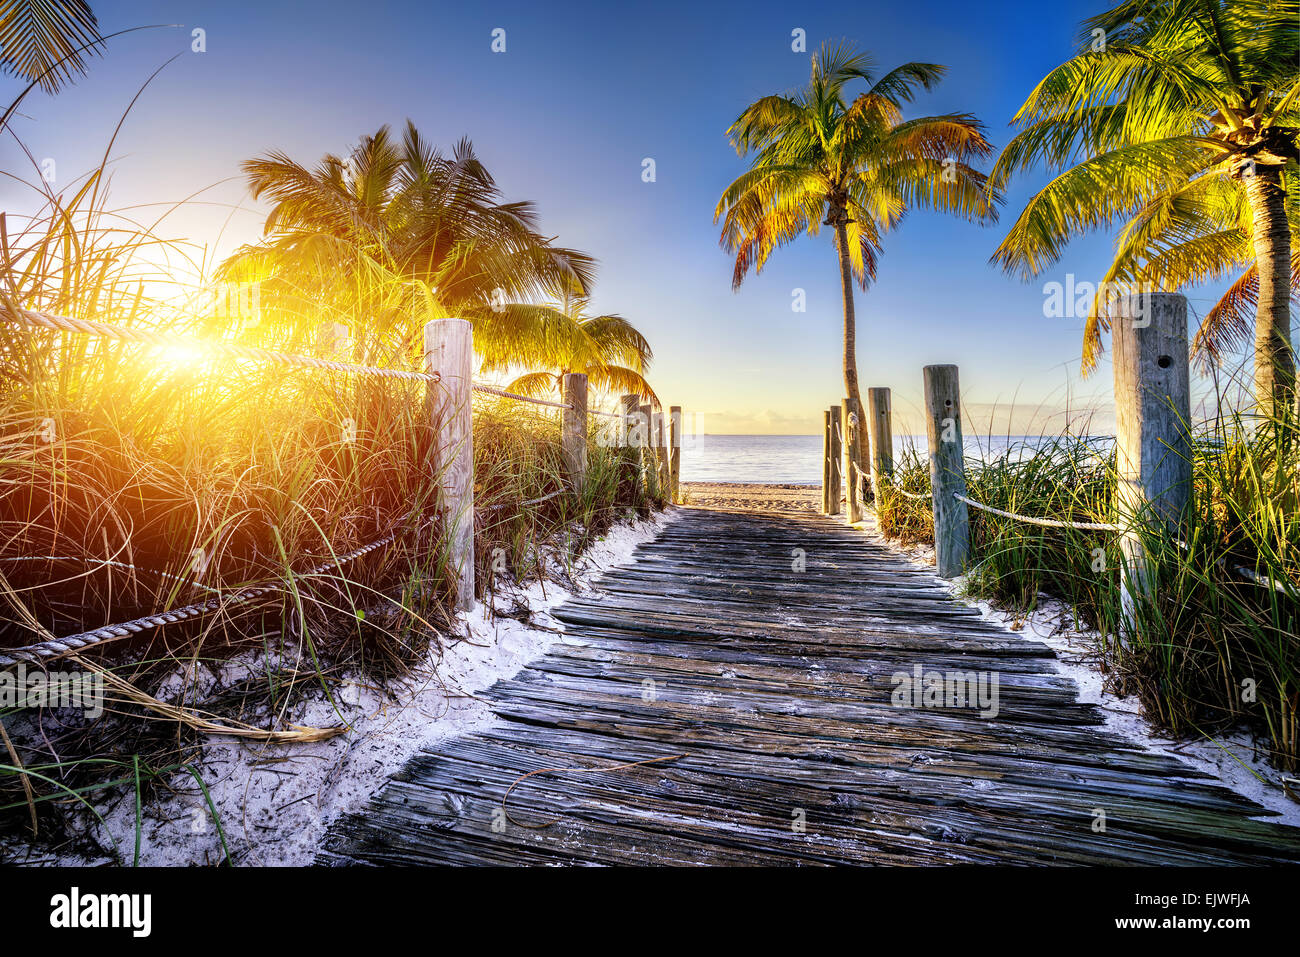 way to the beach in Key West, Miami, Floride, USA - Stock Image